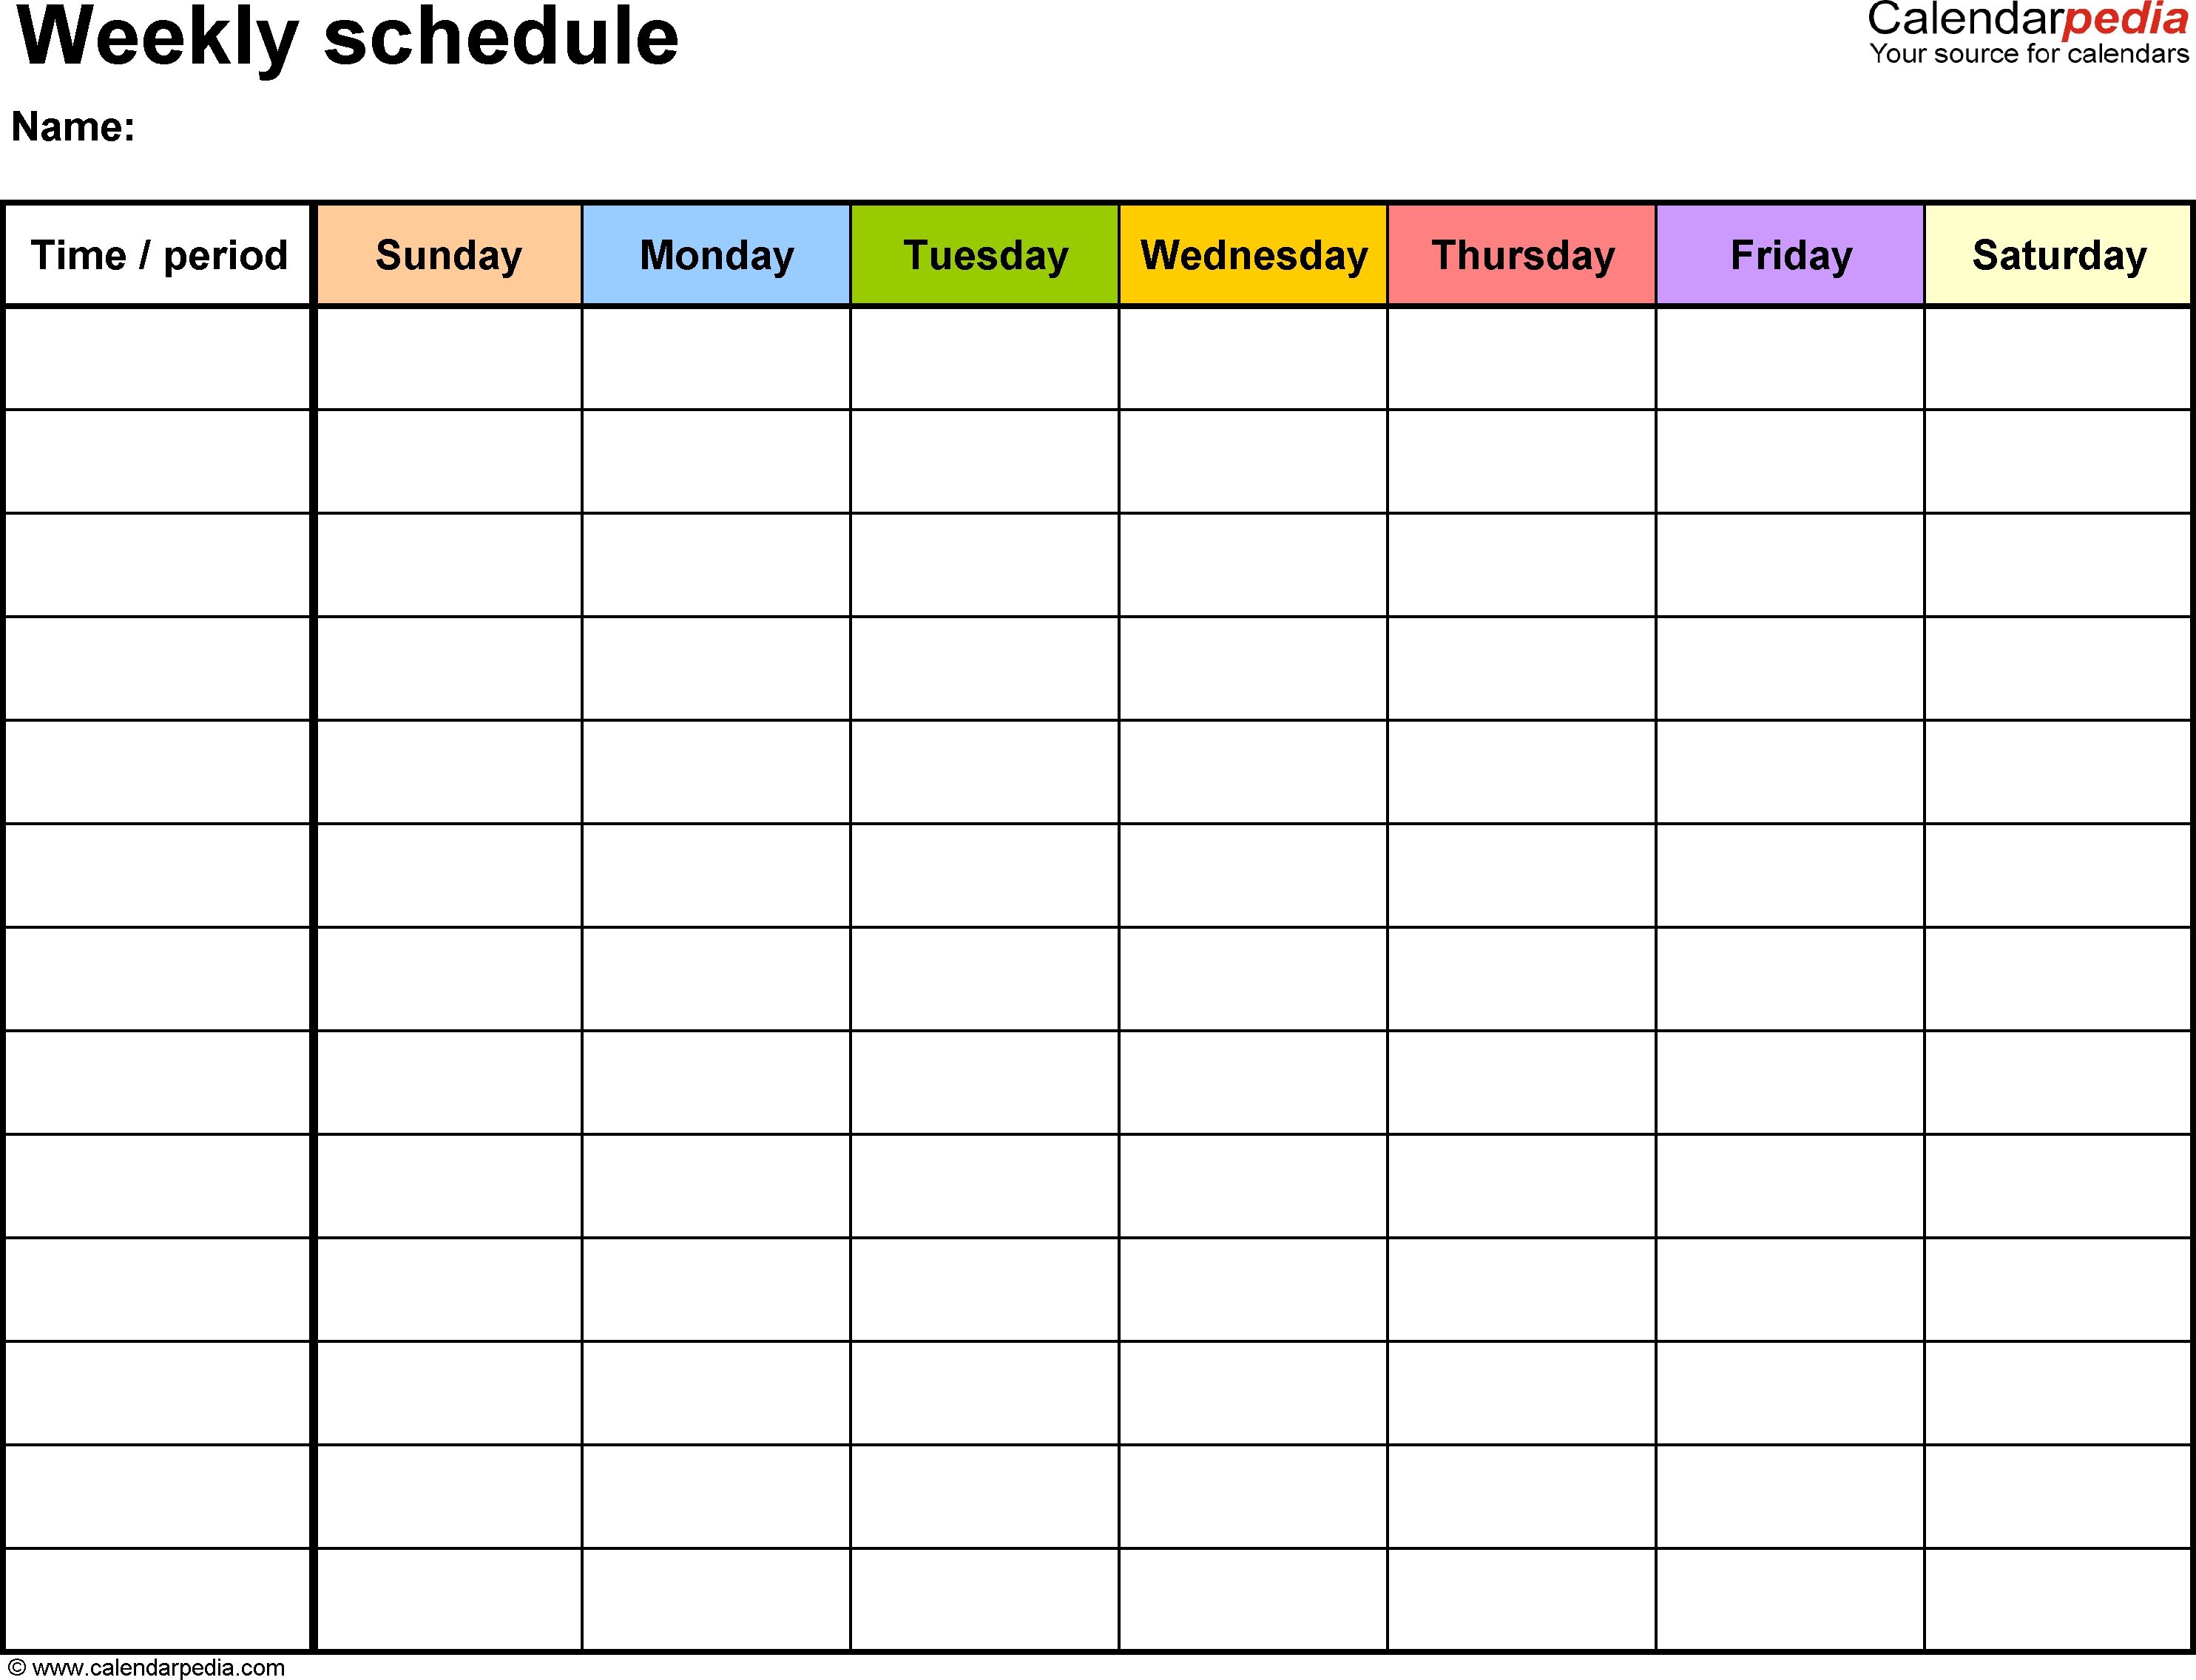 Weekly Schedule With Blank Time Slots | Calendar Printing Example regarding Blank Calendar With Time Slots